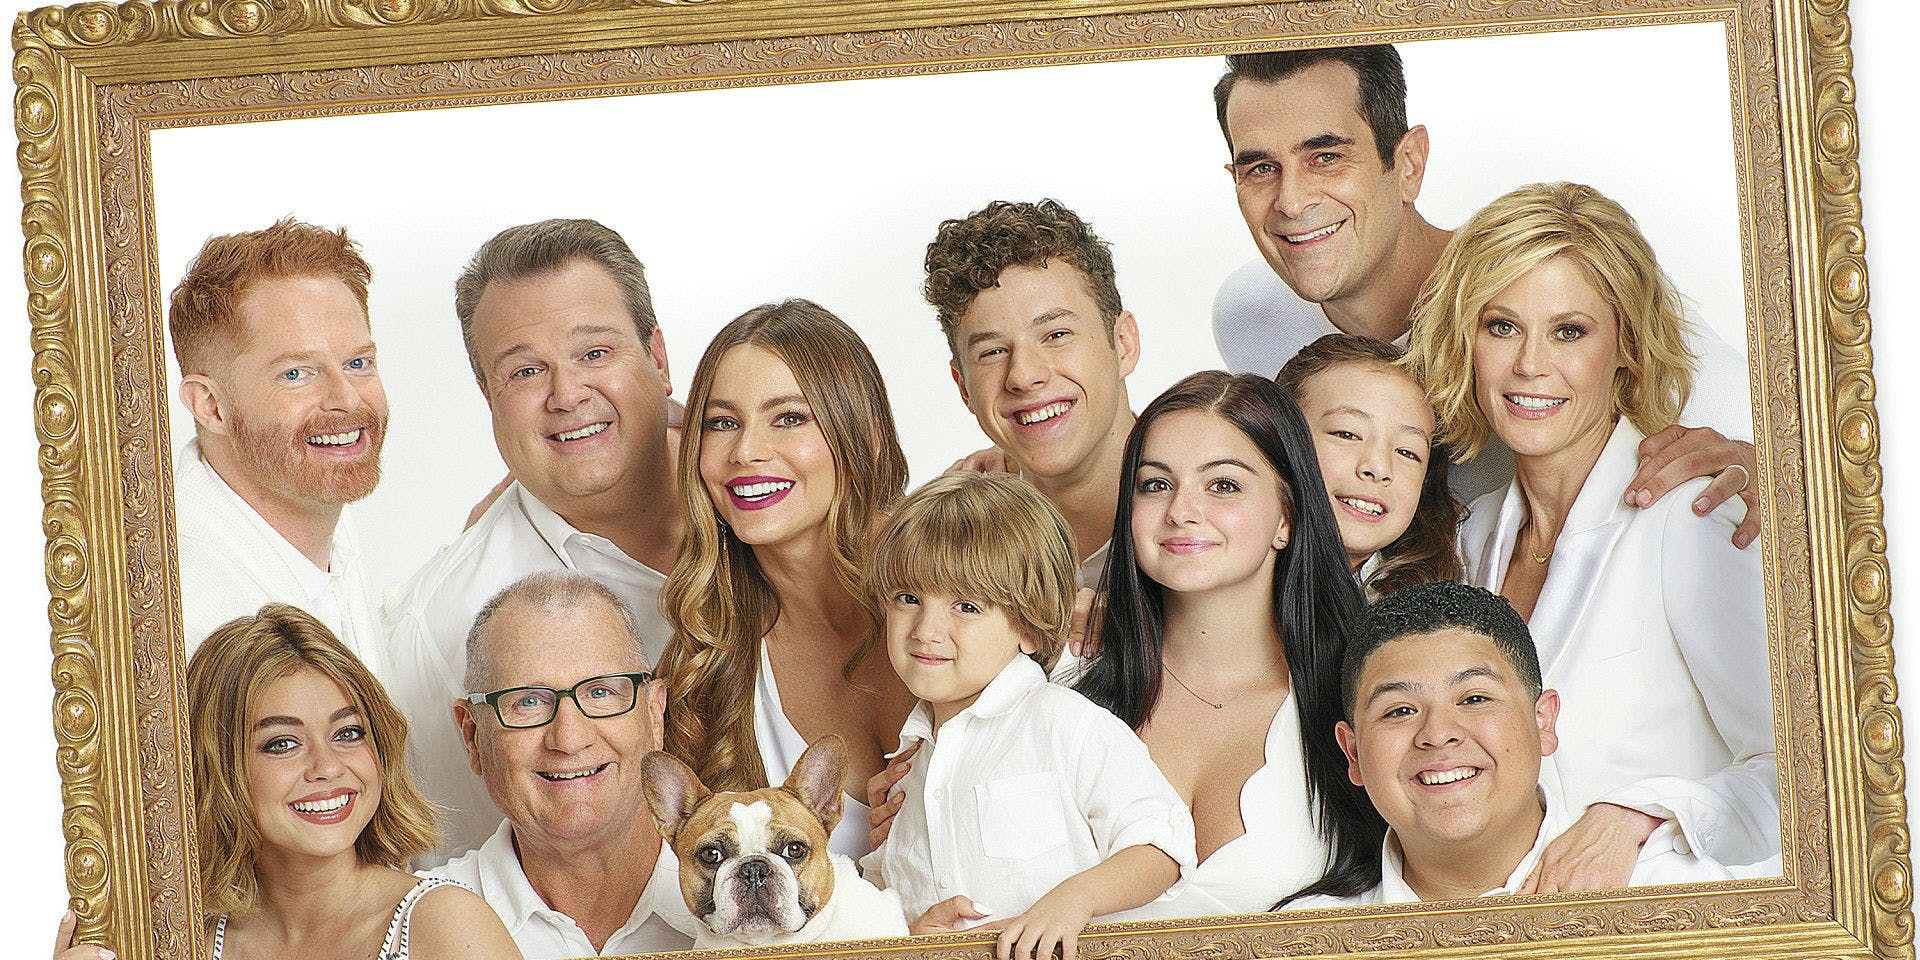 Modern Family Season 11 Release Date Revealed?